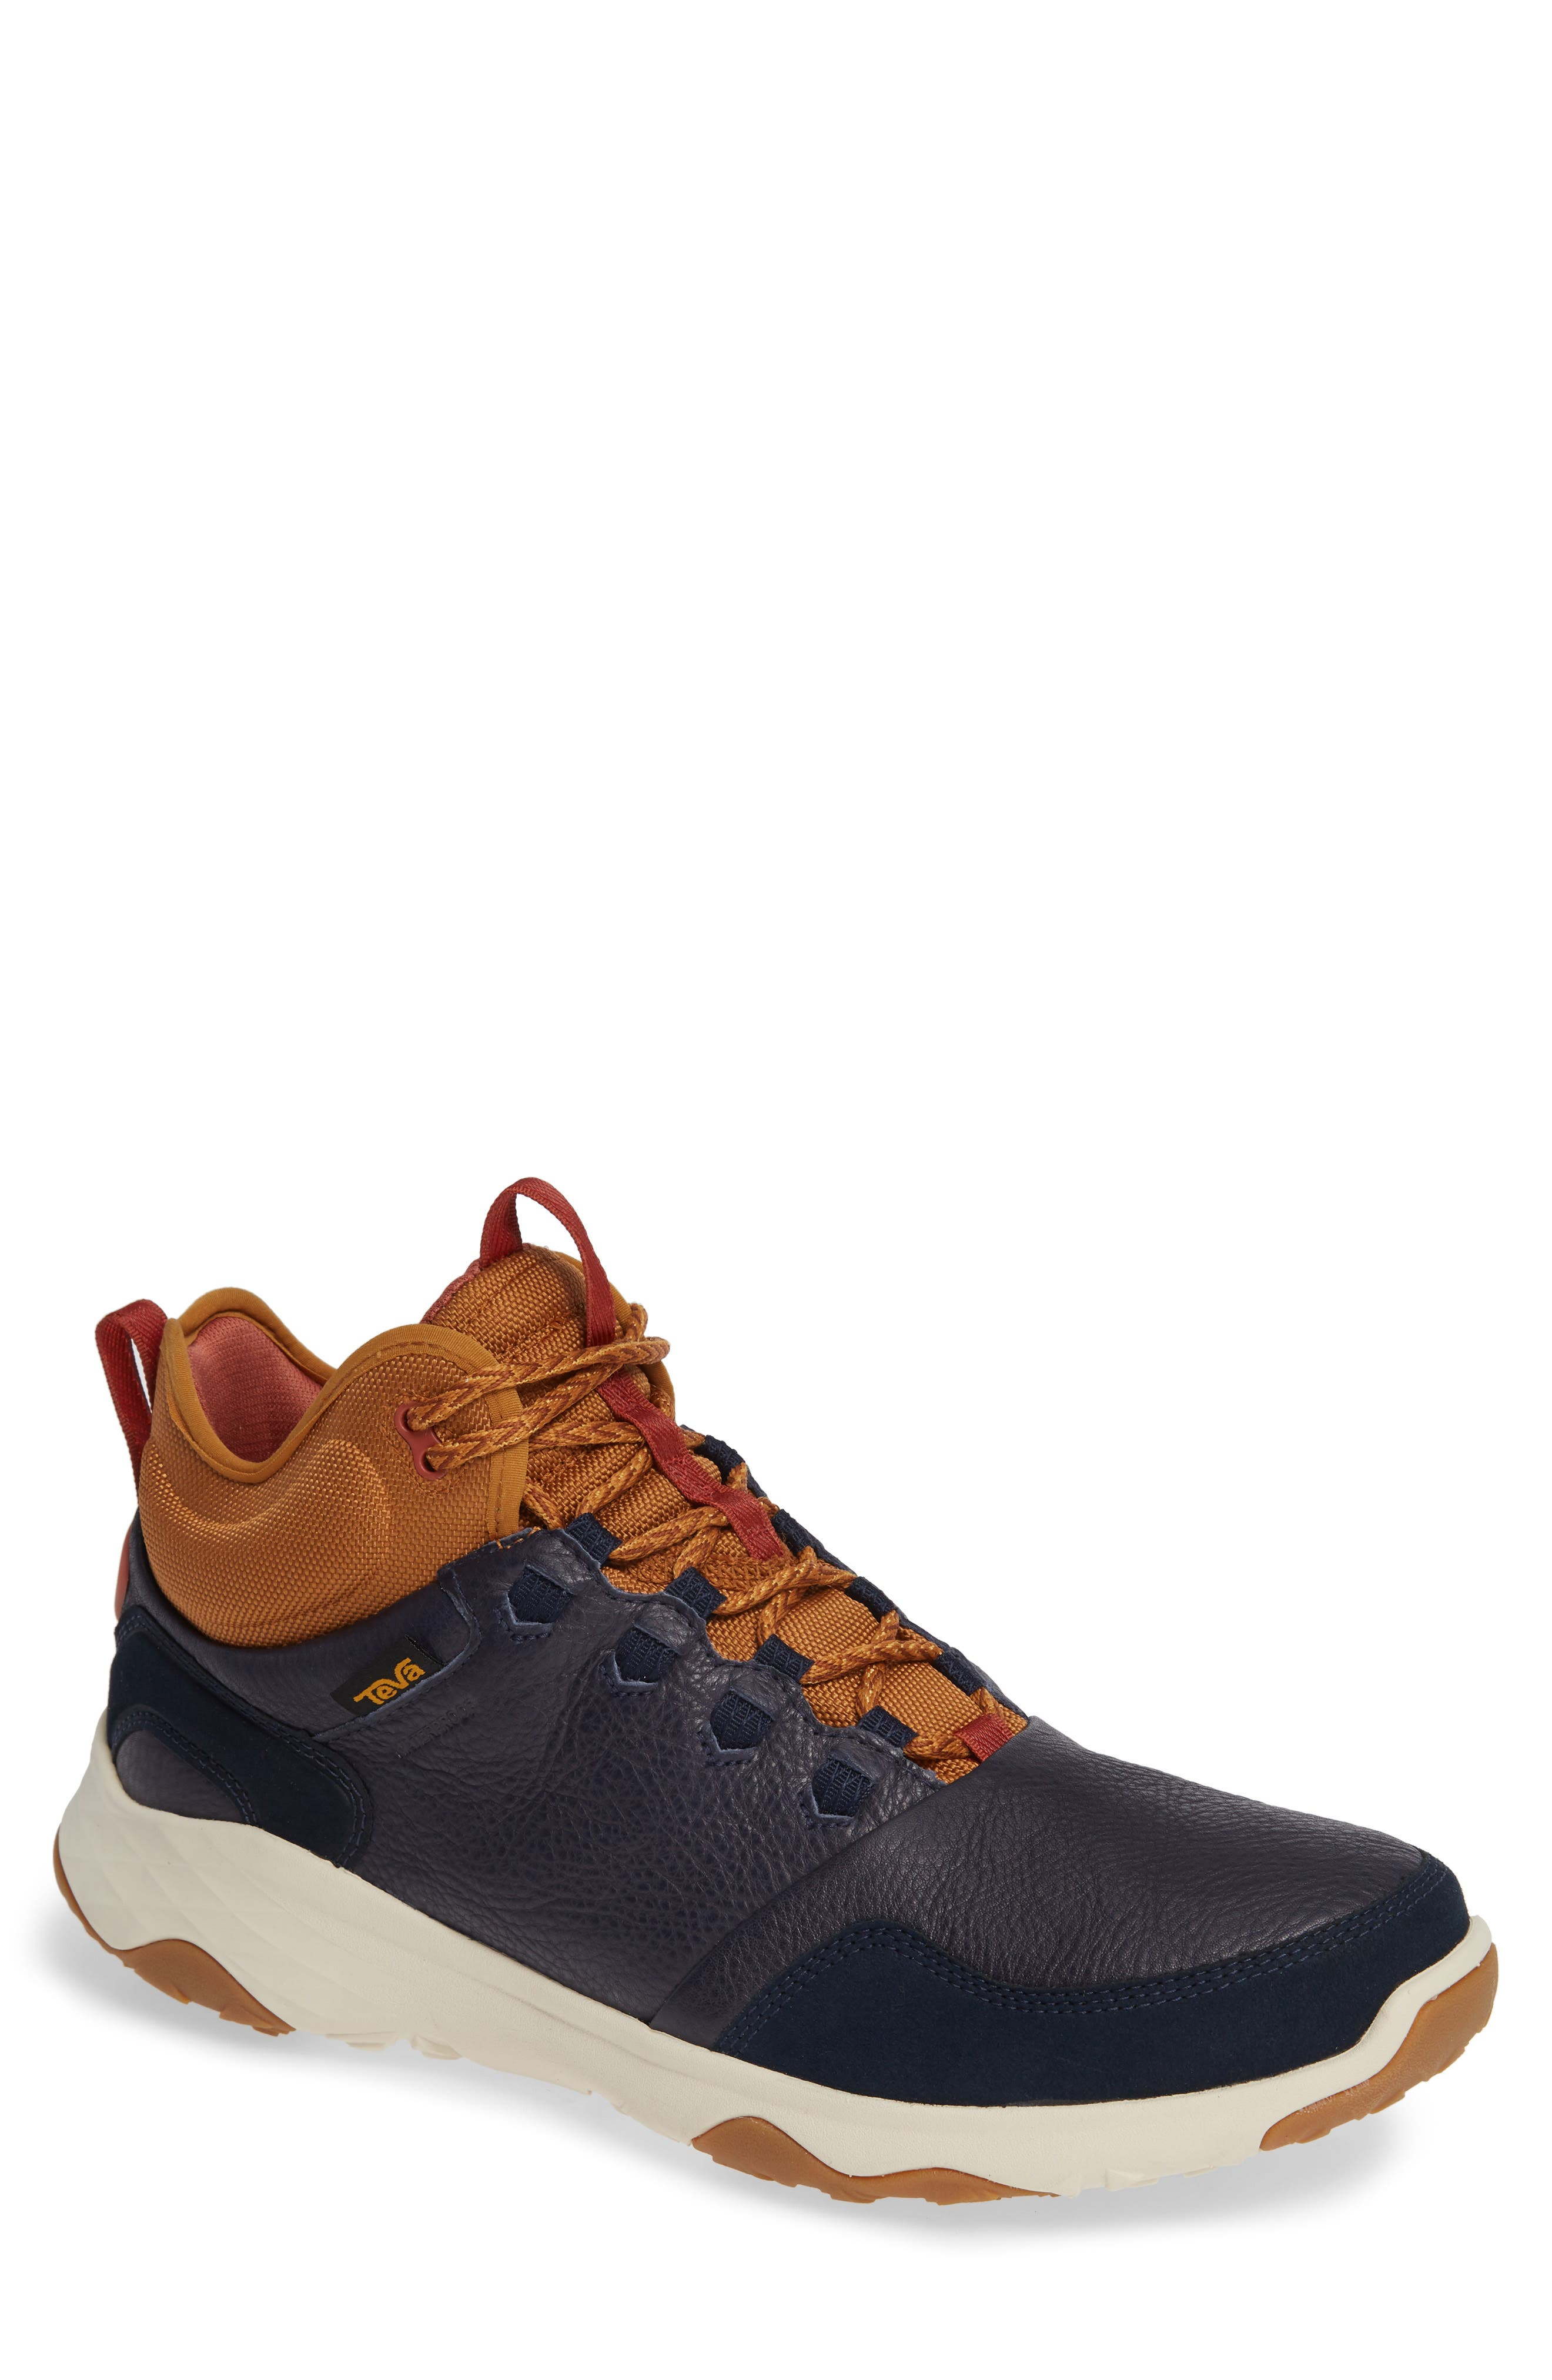 Arrowood 2 Mid Waterproof Sneaker Boot,                             Main thumbnail 1, color,                             MIDNIGHT NAVY LEATHER